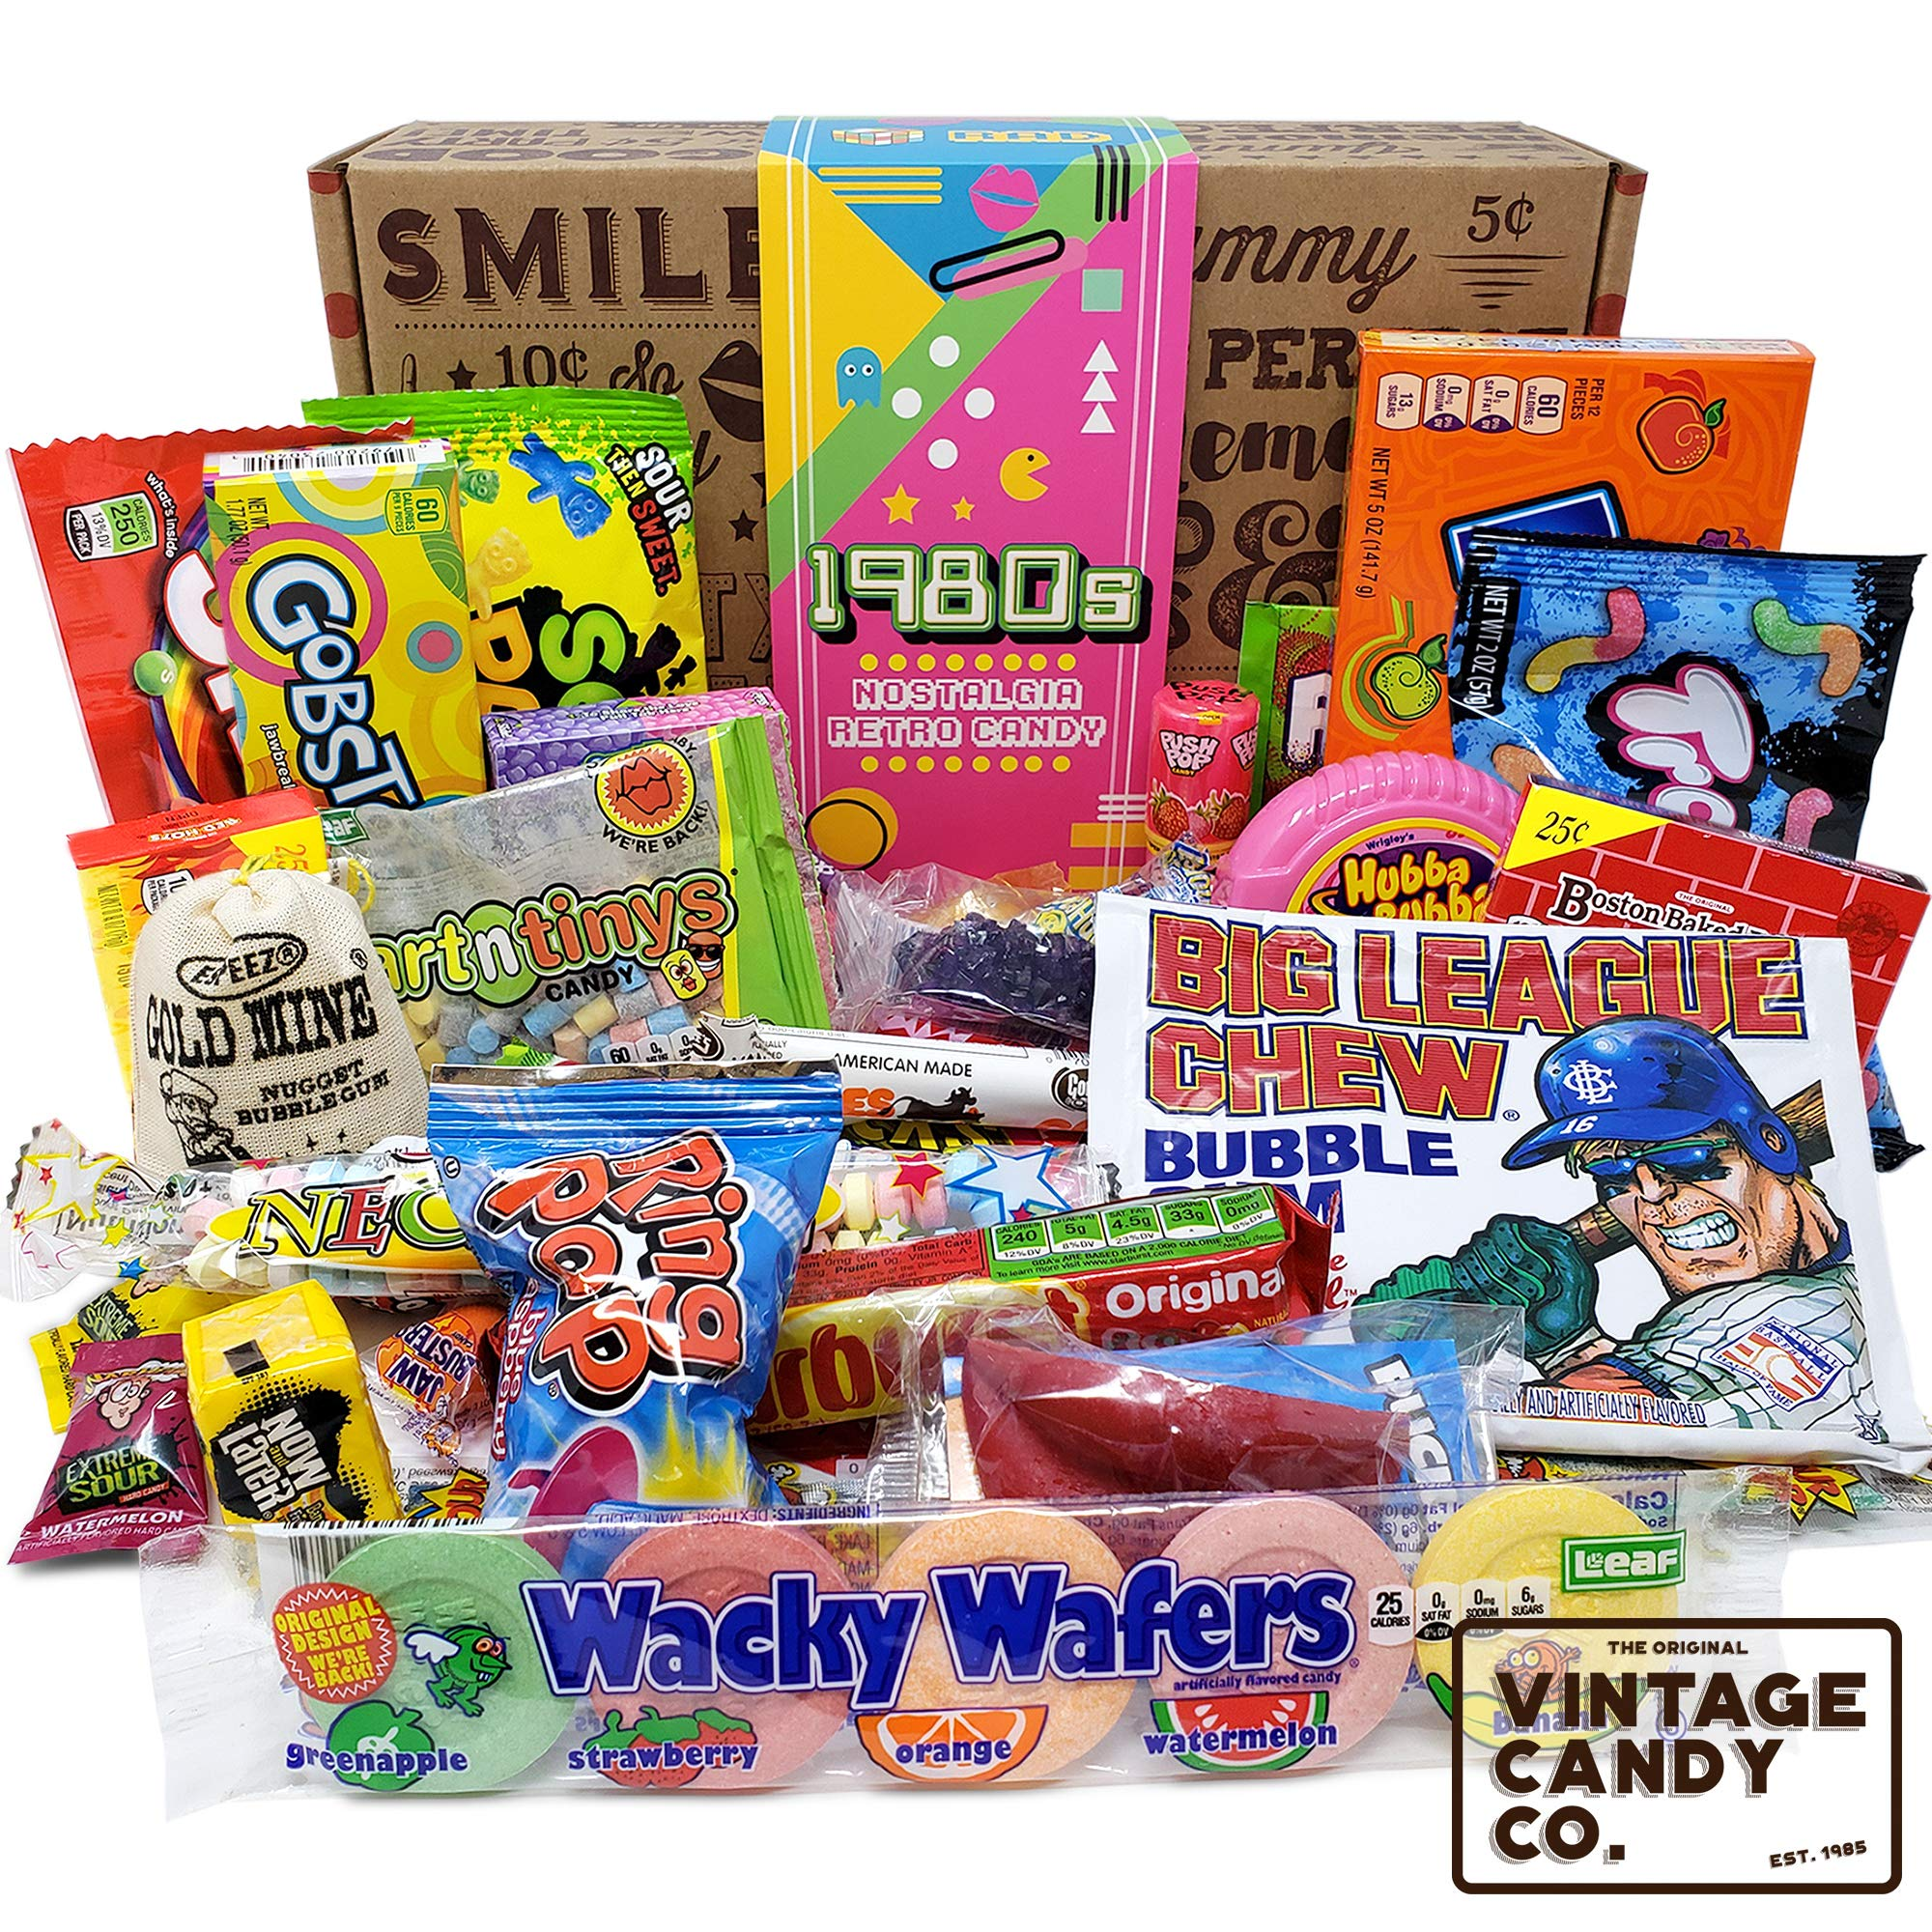 VINTAGE CANDY CO. 1980's RETRO CANDY GIFT BOX - 80s Nostalgia Candies - Flashback EIGHTIES Fun Gag Gift Basket - PERFECT '80s Candies For Adults, College Students, Men or Women, Kids, Teens by Vintage Candy Co.